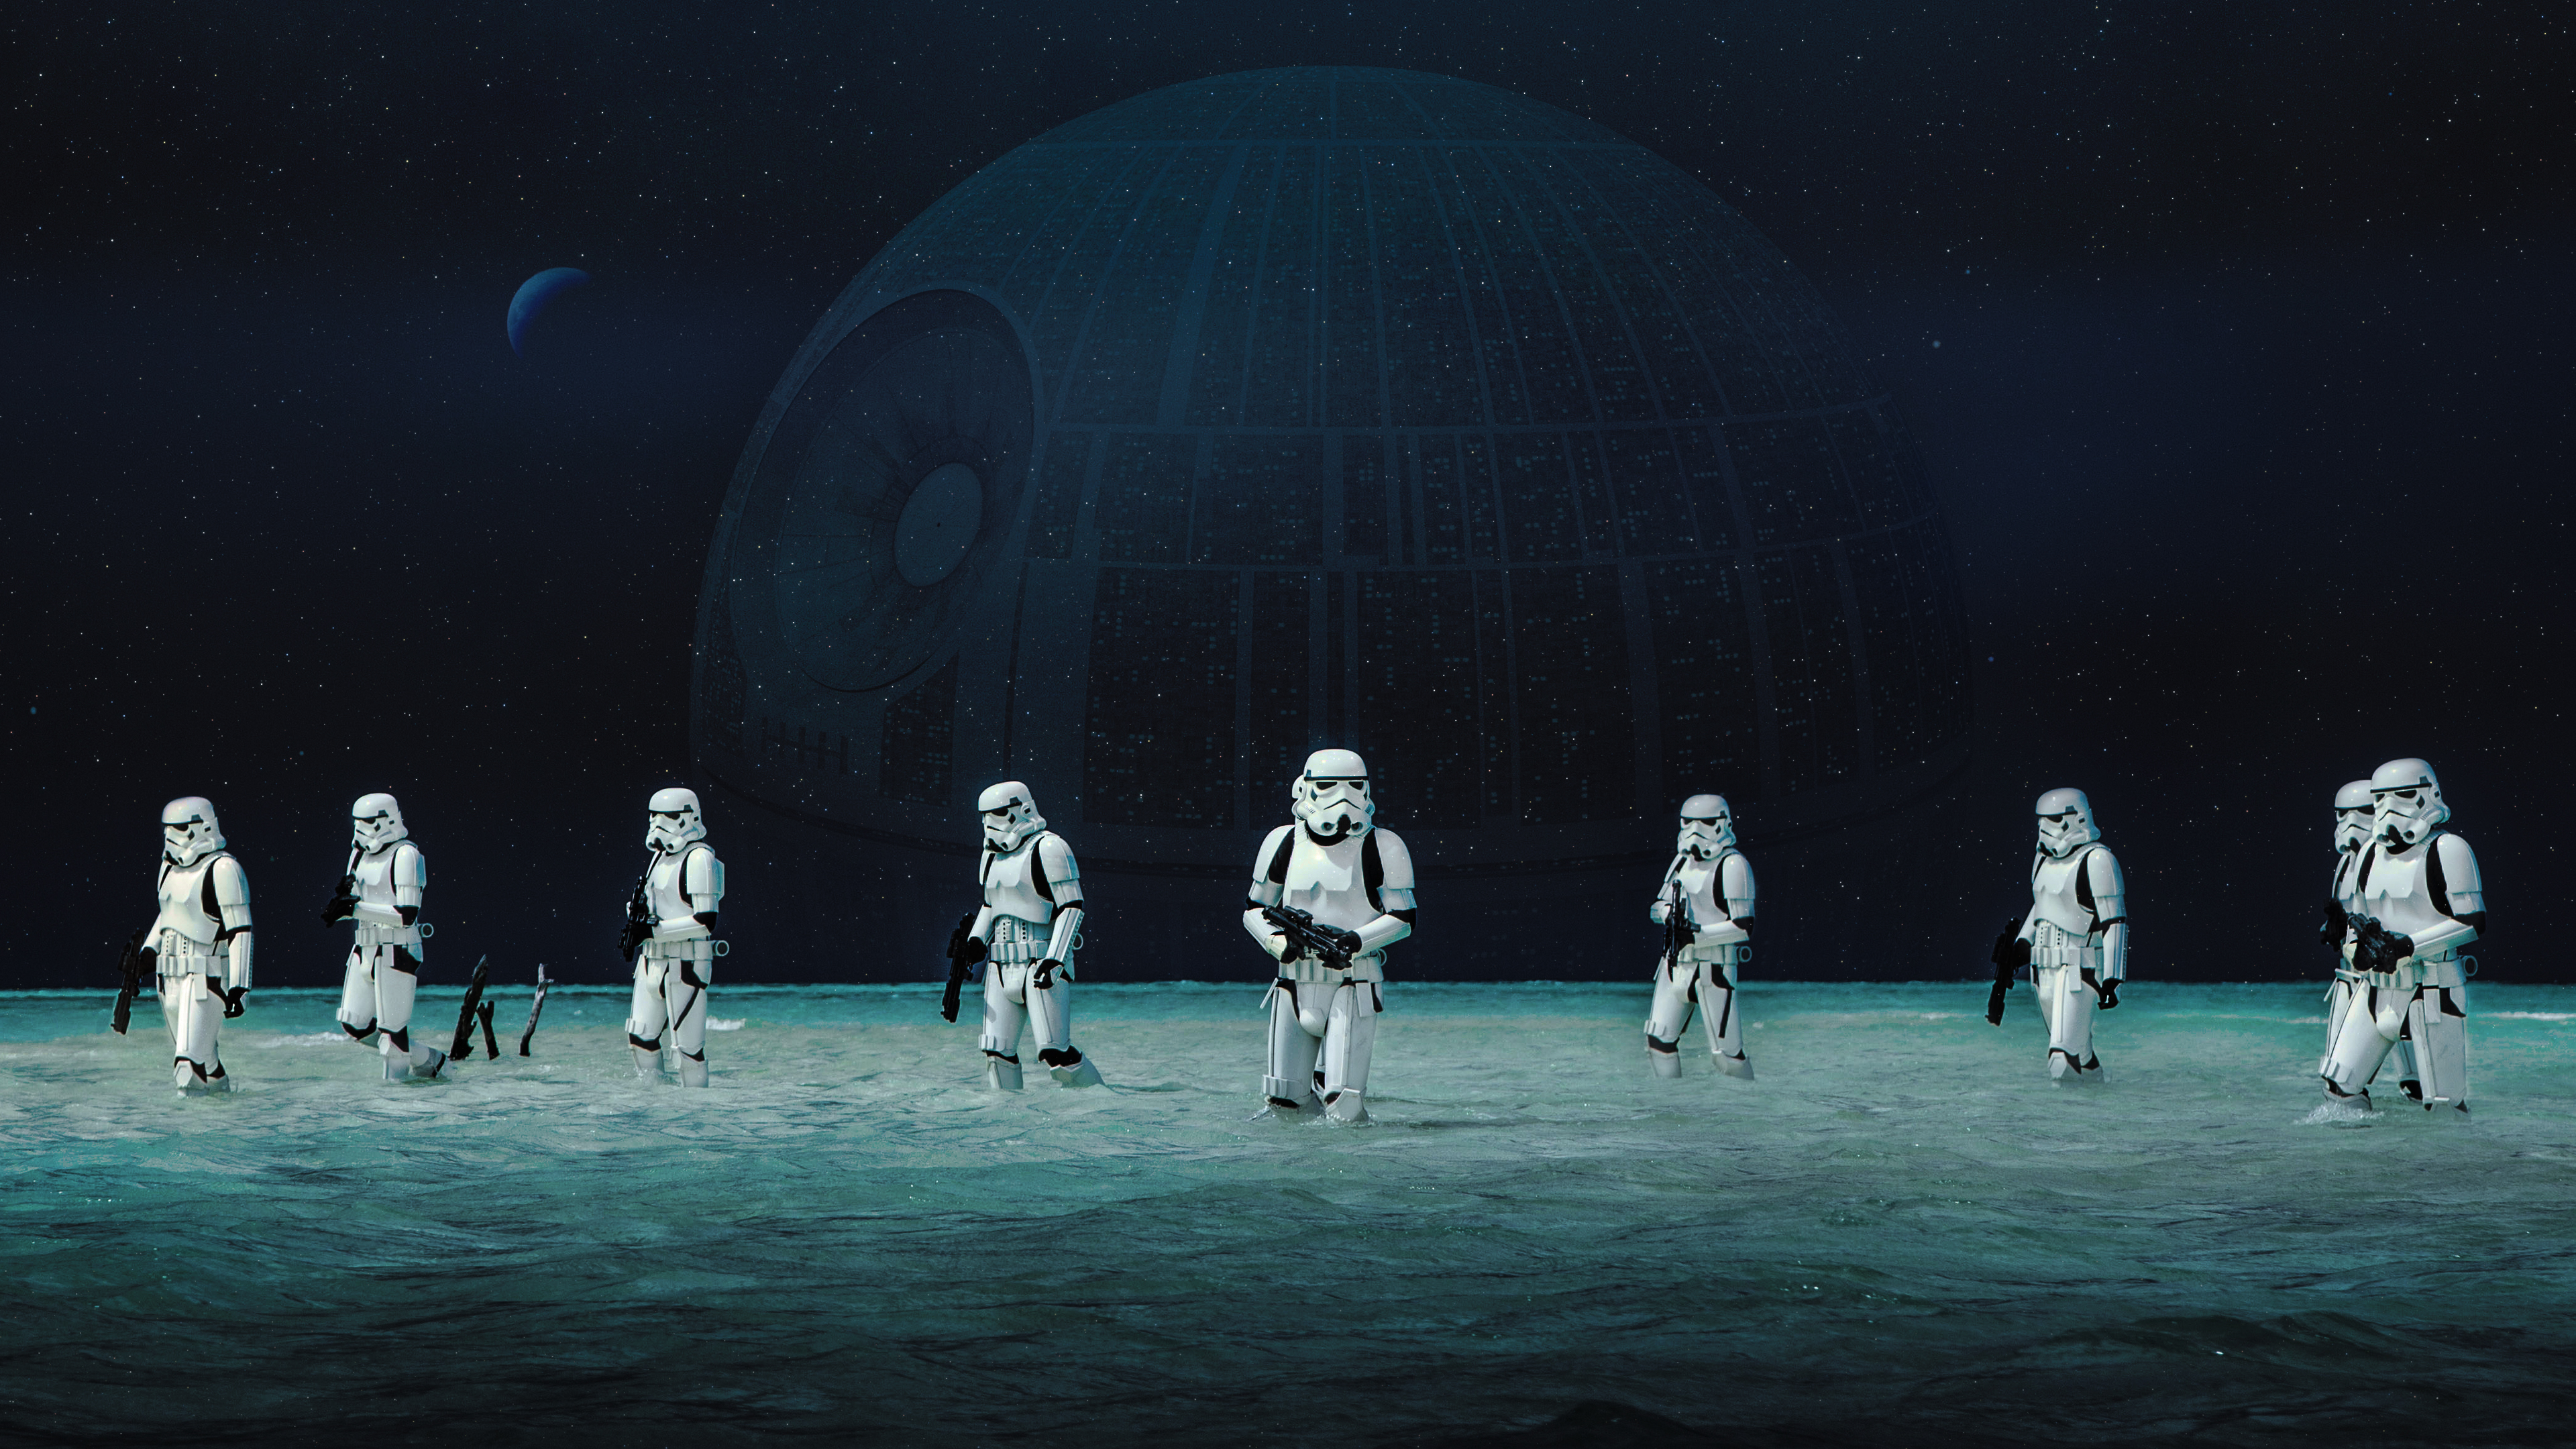 4k Star Wars Rogue One Wallpaper Hd